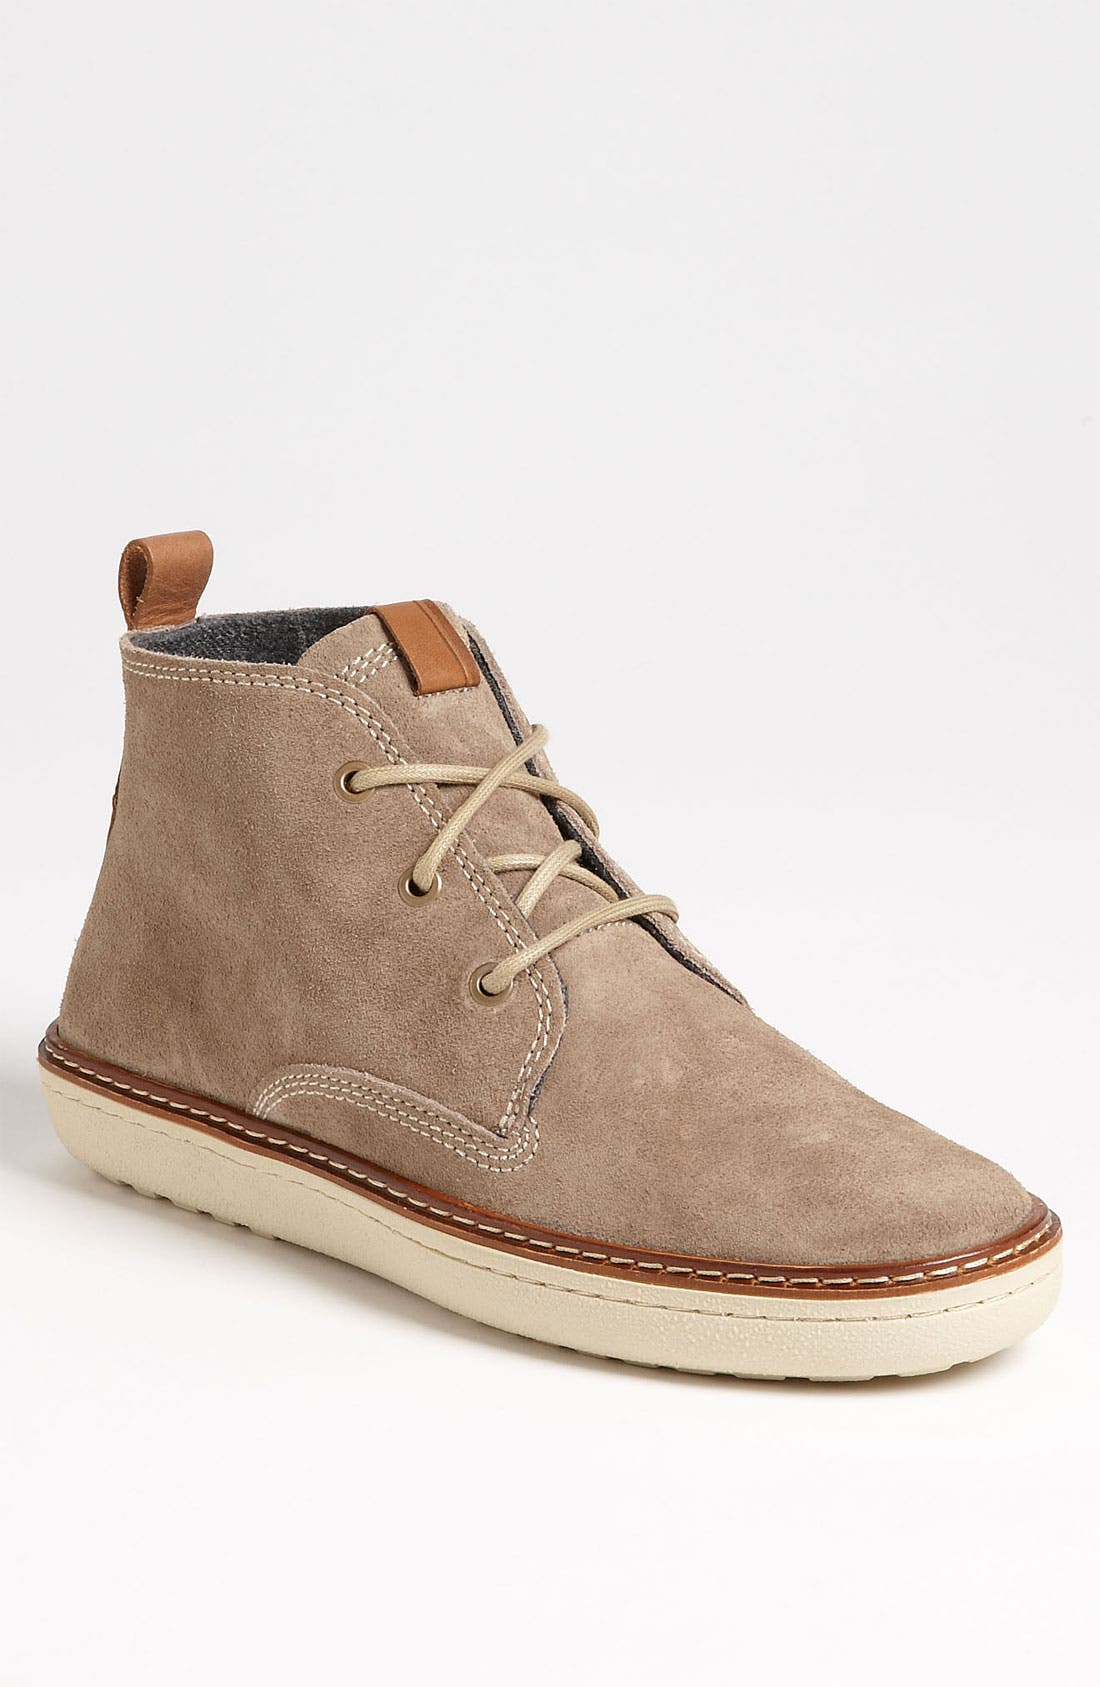 Alternate Image 1 Selected - Fred Perry 'Clayton' Suede Chukka Boot